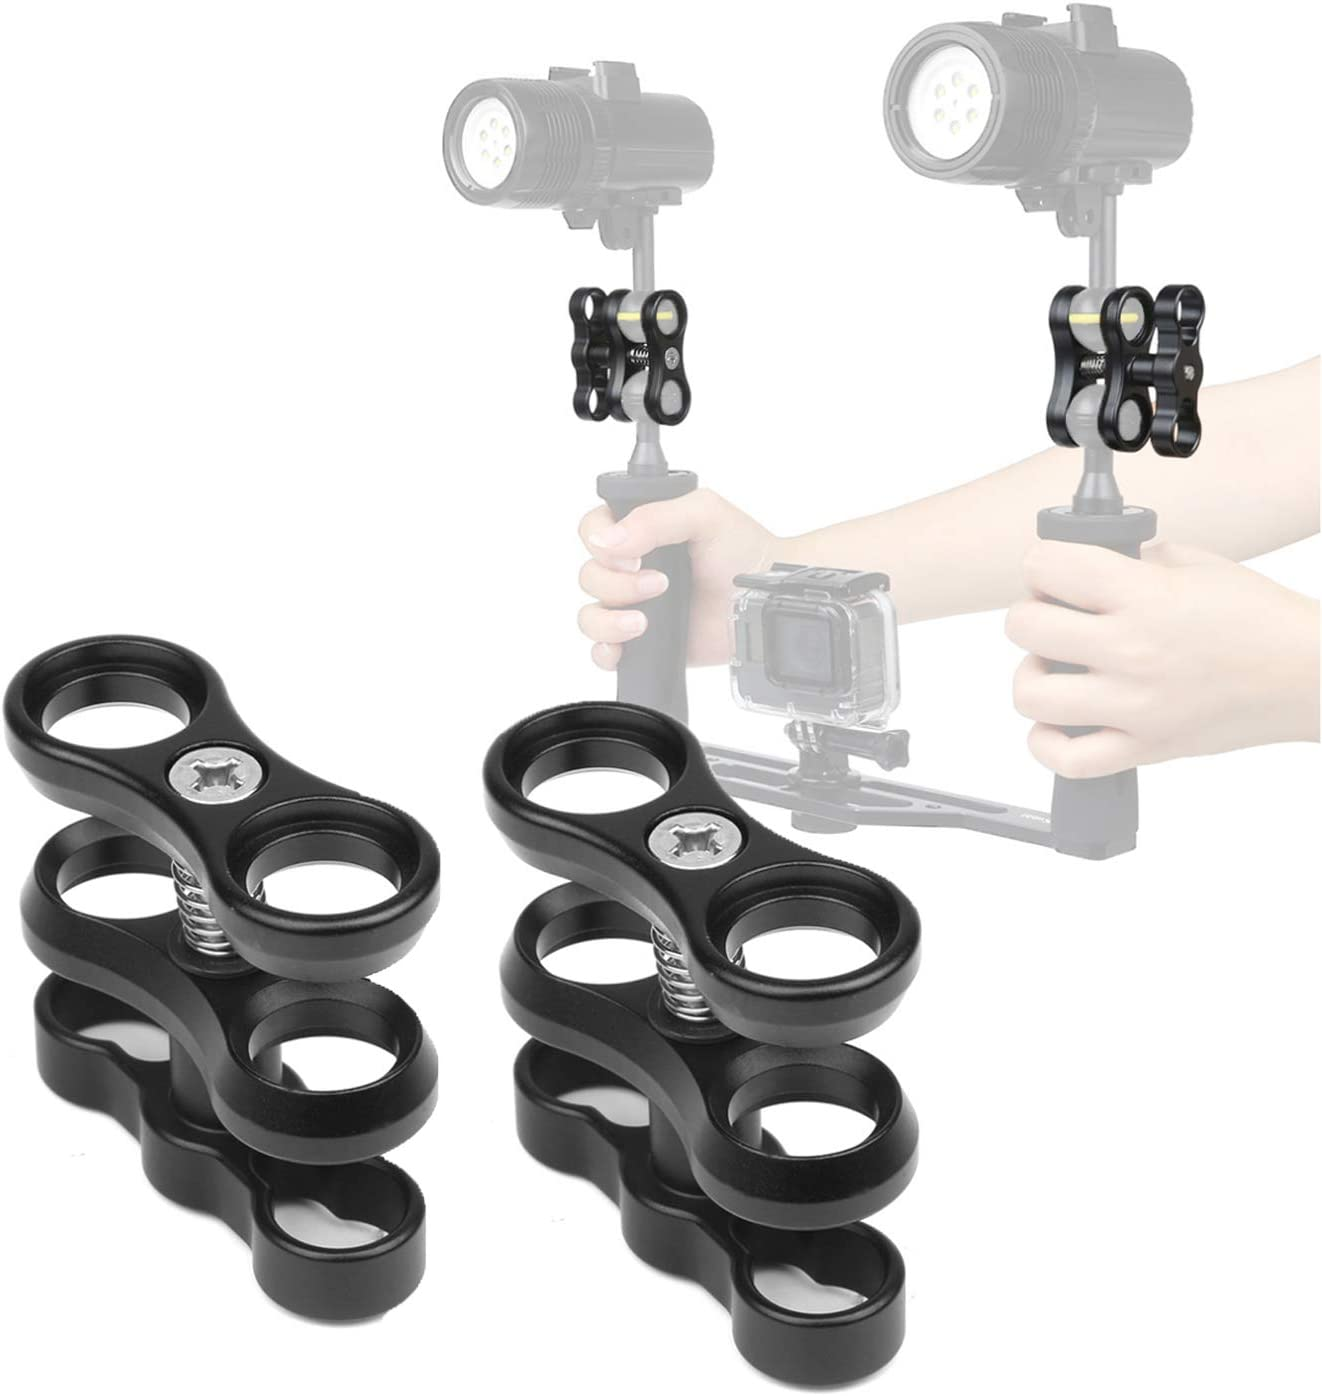 """2 Pcs 1"""" Aluminum Ball Clamp Mount for Underwater Diving Light Arms Tray System, Photography Diving Camera"""